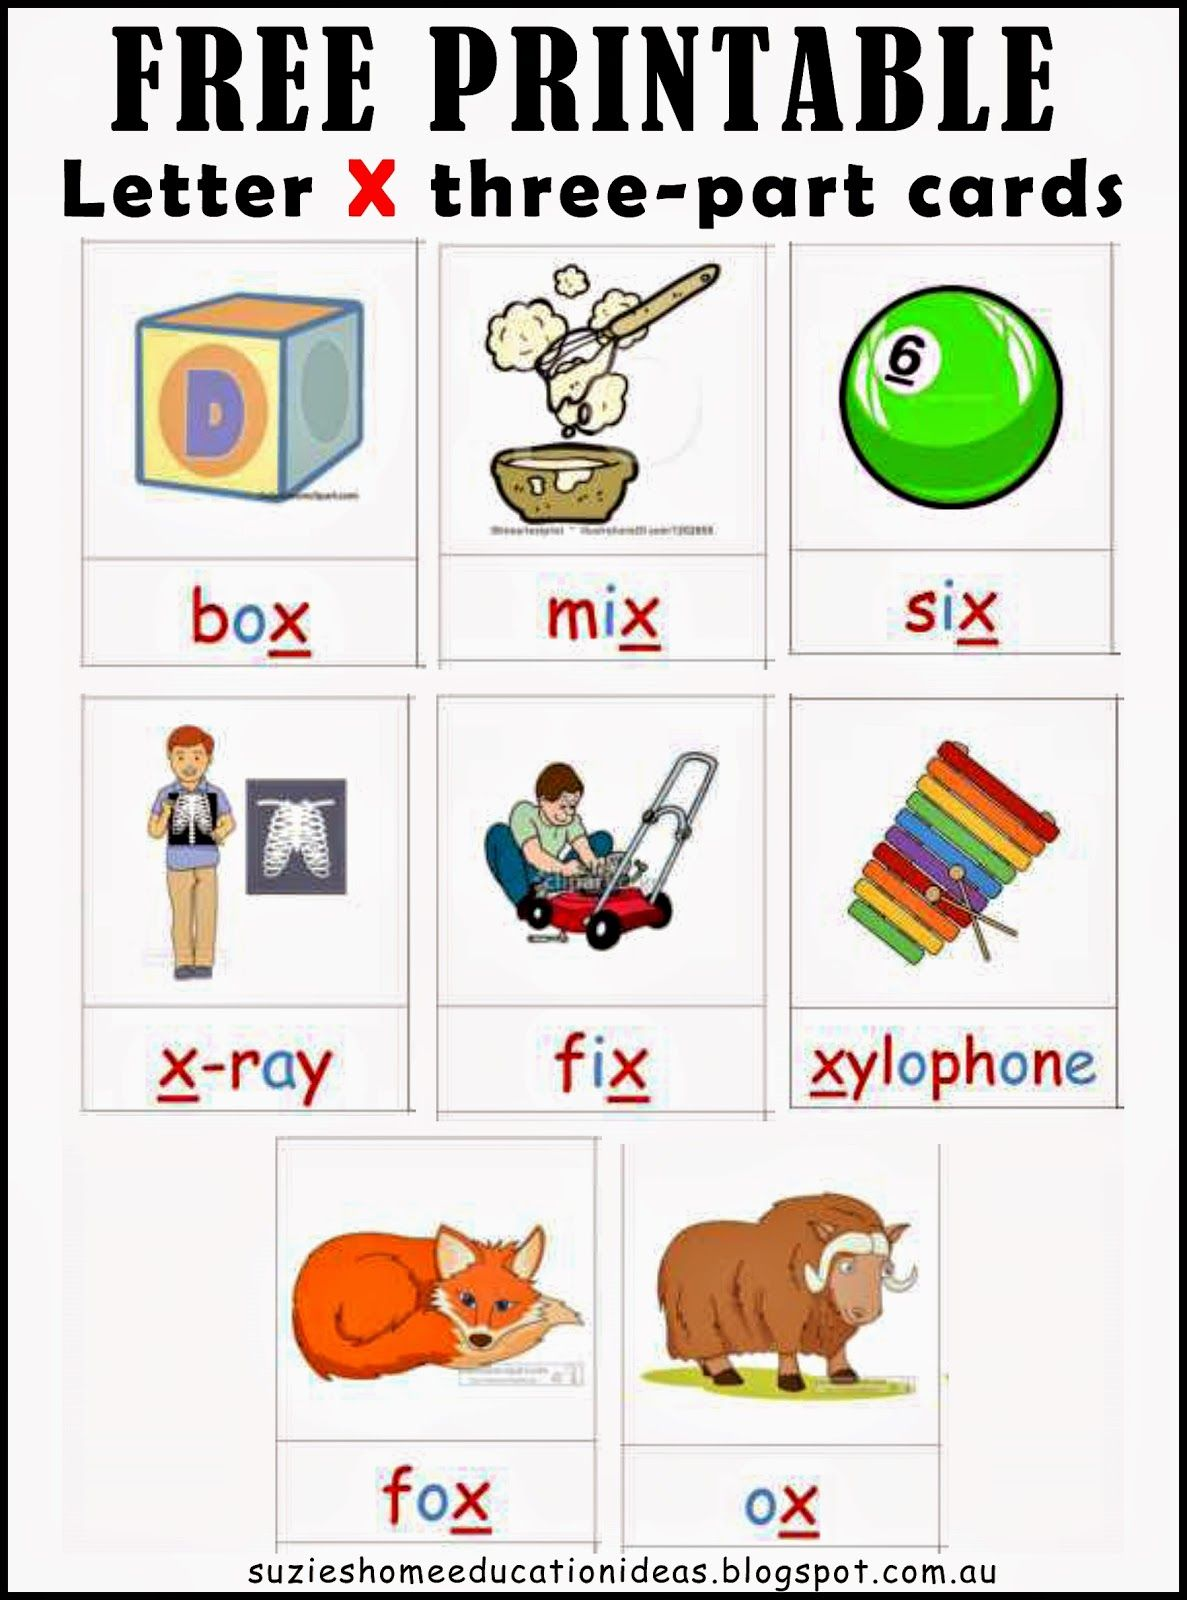 8 letter words that start with e letter x printable cards and activity ideas classroom 20303 | 340afb86d57cc822bb4d040b5e8ff8be